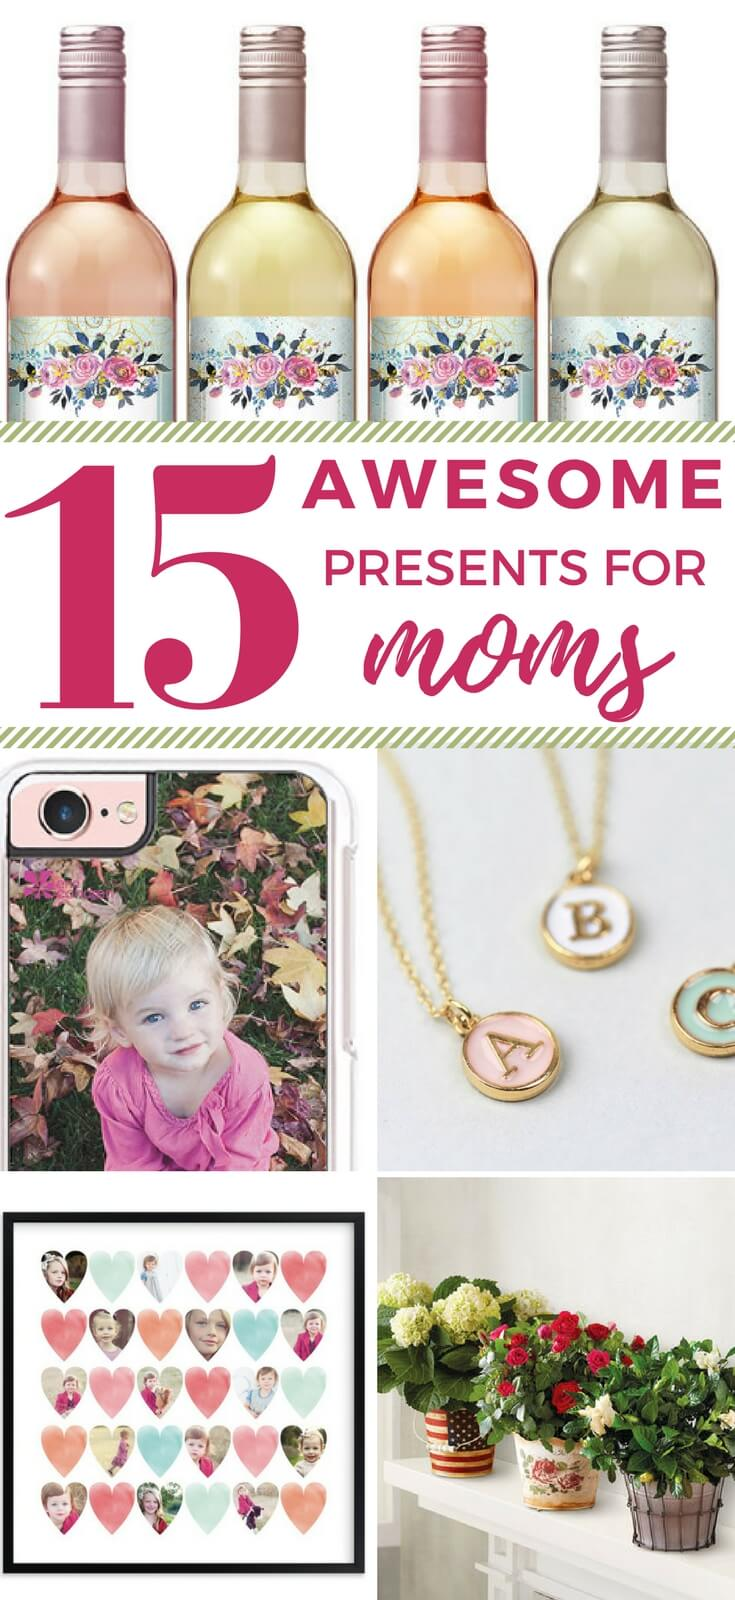 Looking for the perfect gift for the moms in your life? These 15 awesome ideas are the perfect presents for mothers of all ages! There is something to make everyone feel special.